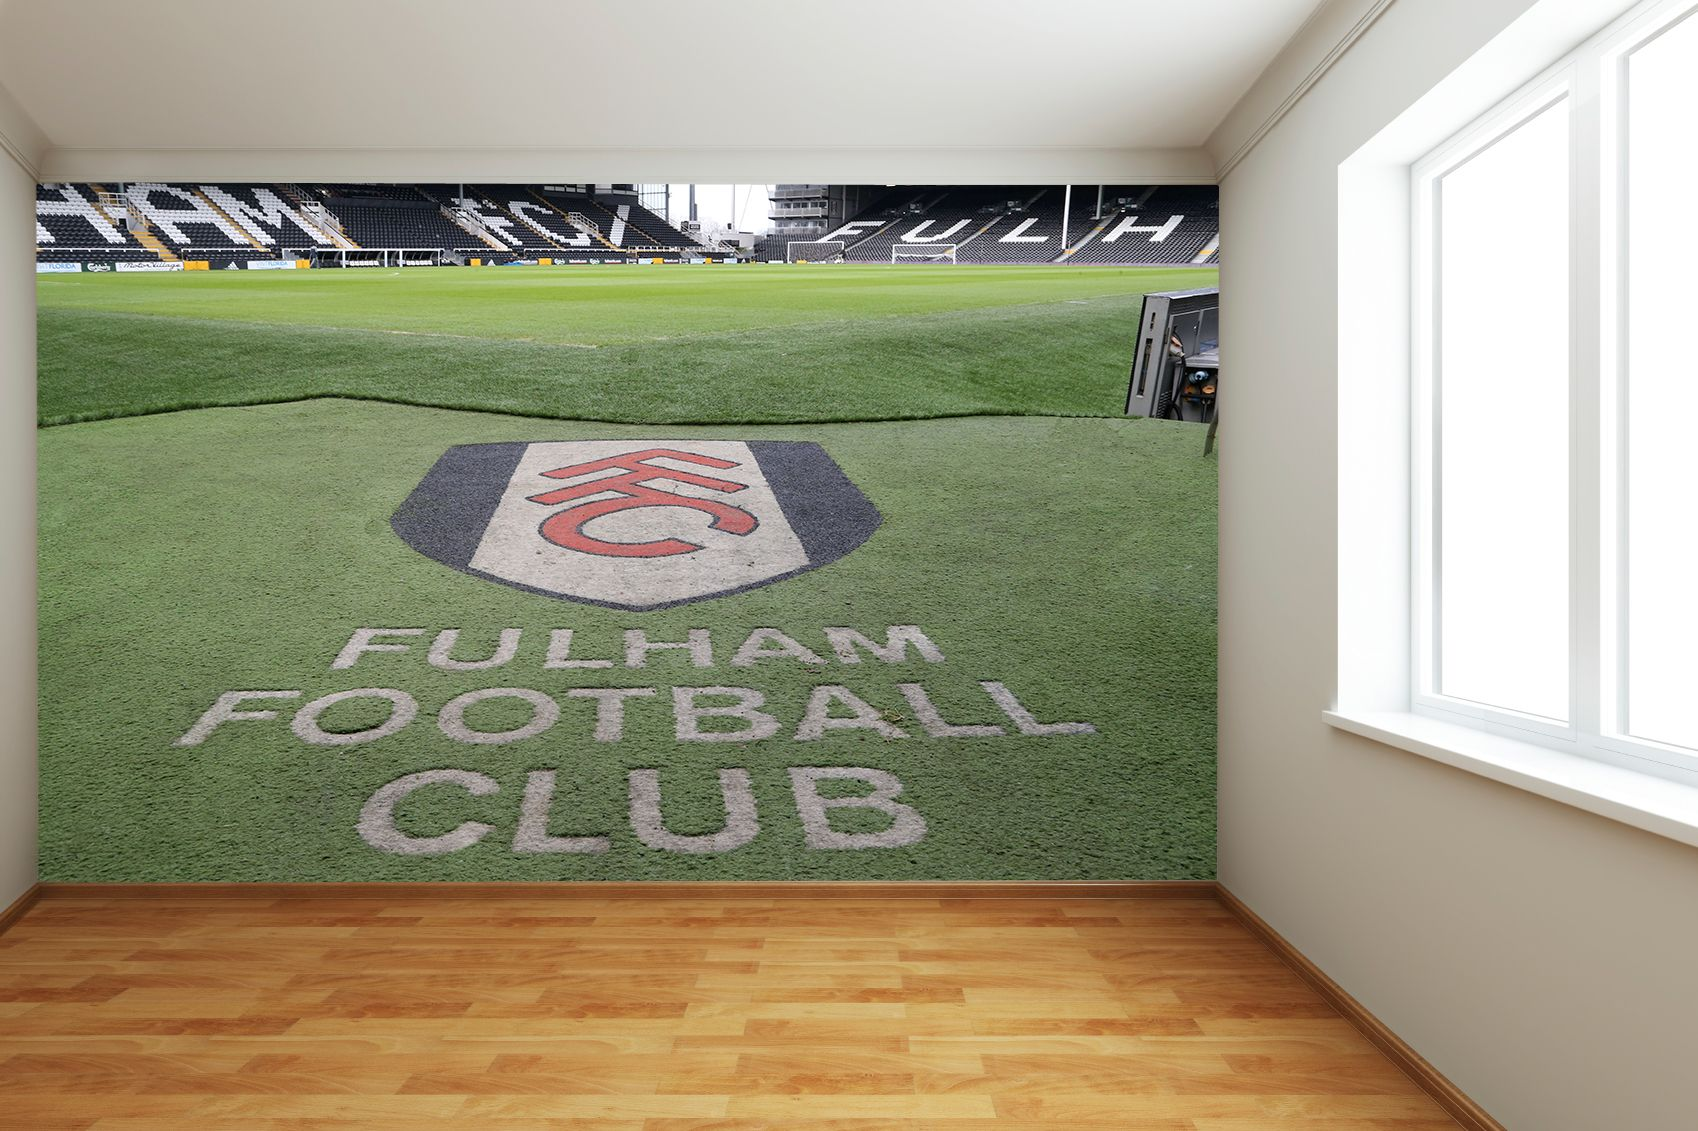 Fulham FC - Craven Cottage Stadium Full Wall Mural Pitch & Club Crest